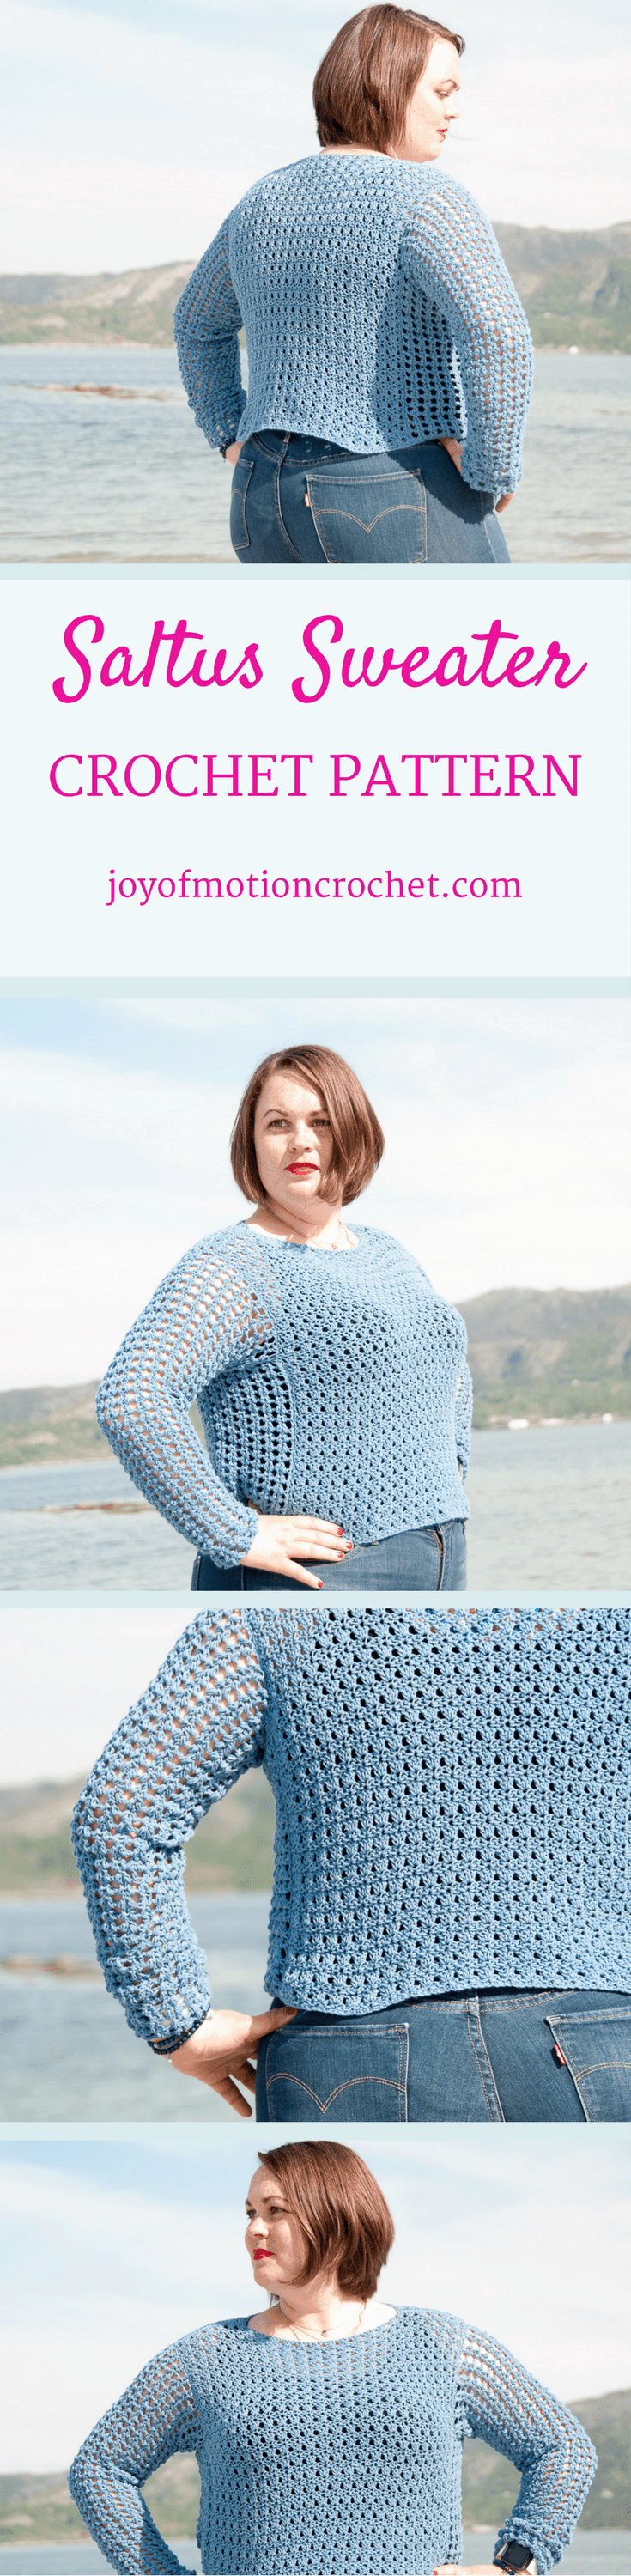 The Saltus Sweater a crochet pattern. Woman's sweater crochet pattern with skill level easy. Make this fashionable crochet sweater with you own hook & yarn. Sweater crochet pattern easy for her . Crochet sweater | woman's crochet sweater | crochet pattern for her | fashionable crochet sweater | interesting crochet sweater | click to learn more or repin to save it forever.